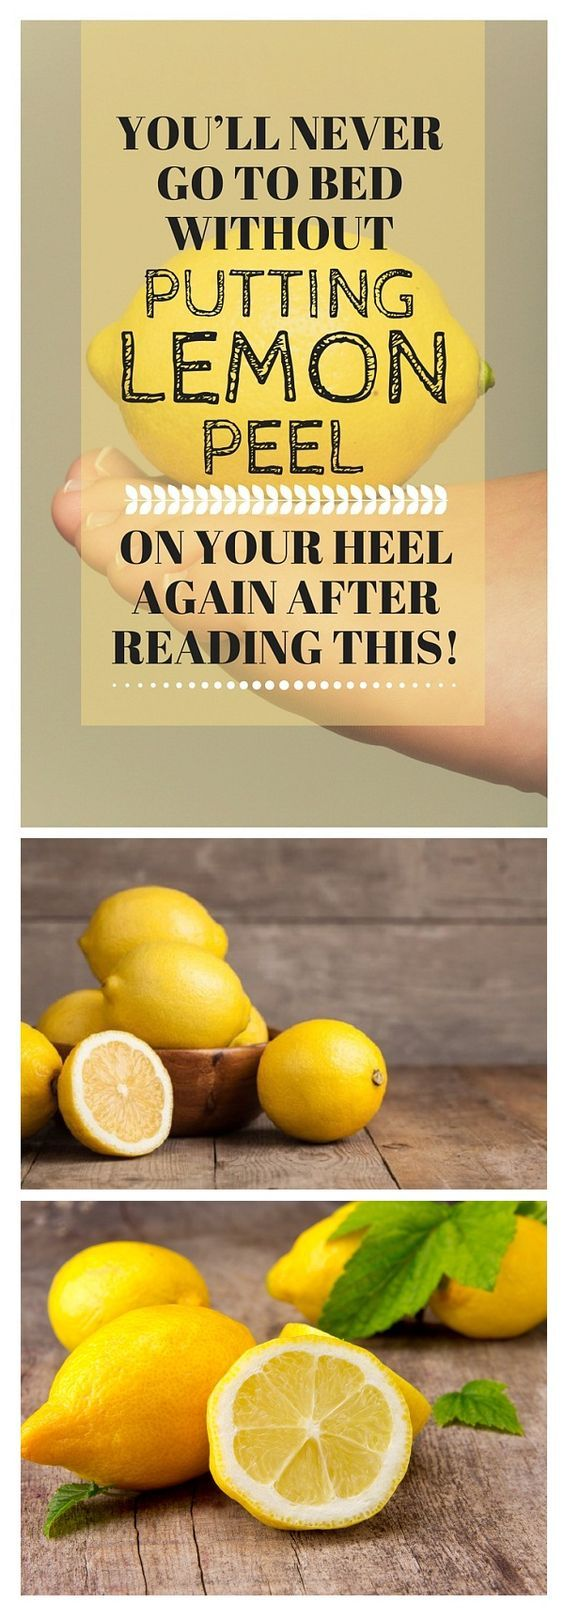 You'll Never Go to Bed Without Putting Lemon Peel on Your Heel Again After Reading This!